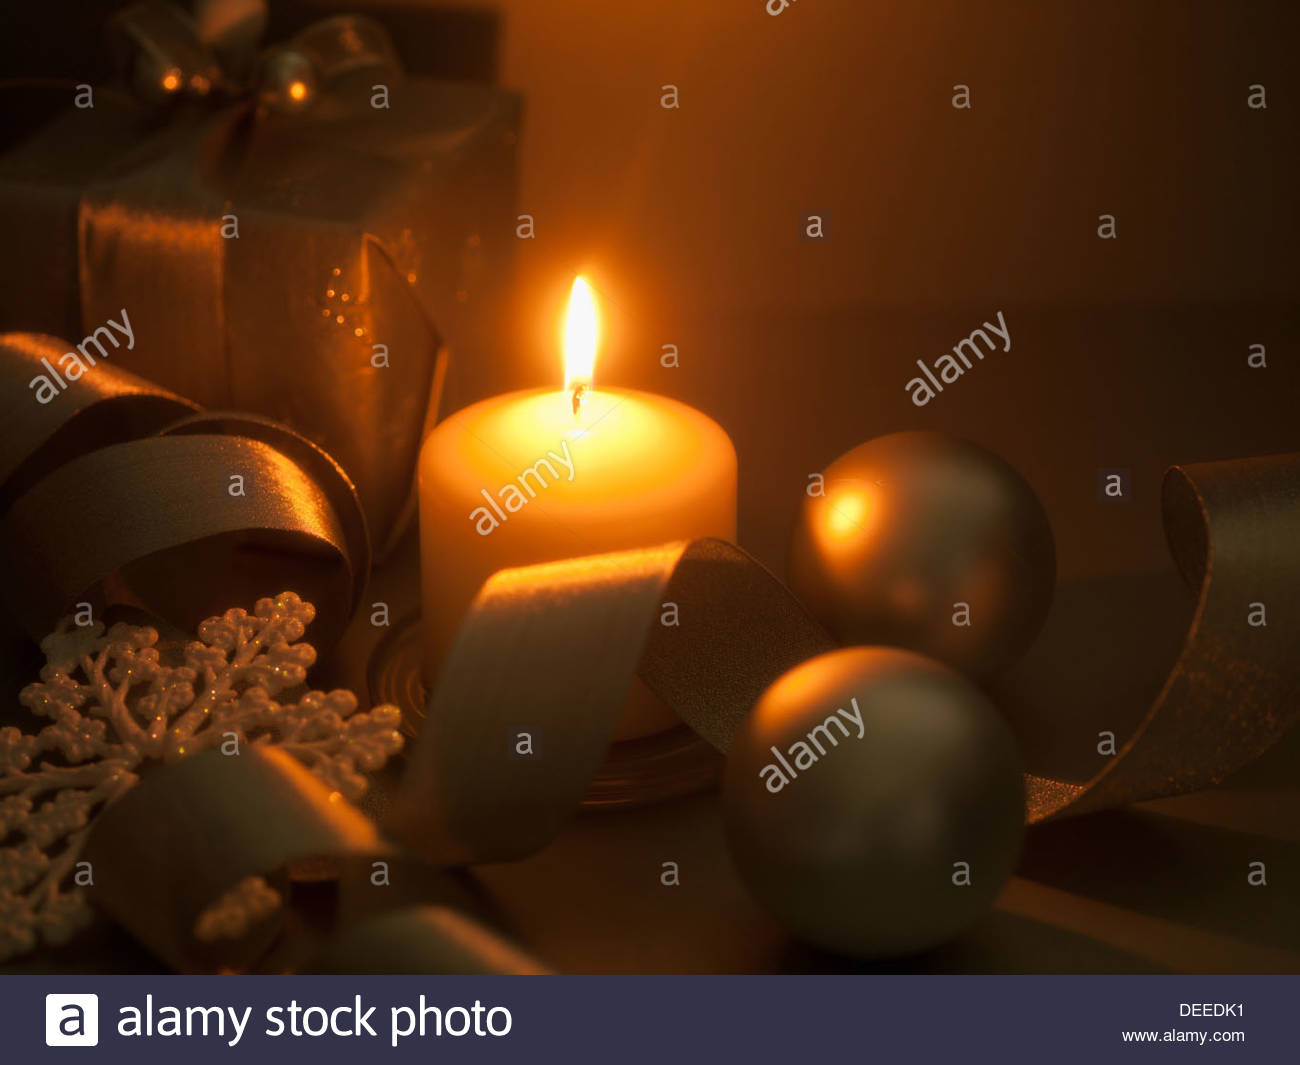 Christmas gifts, ornaments and candle - Stock Image